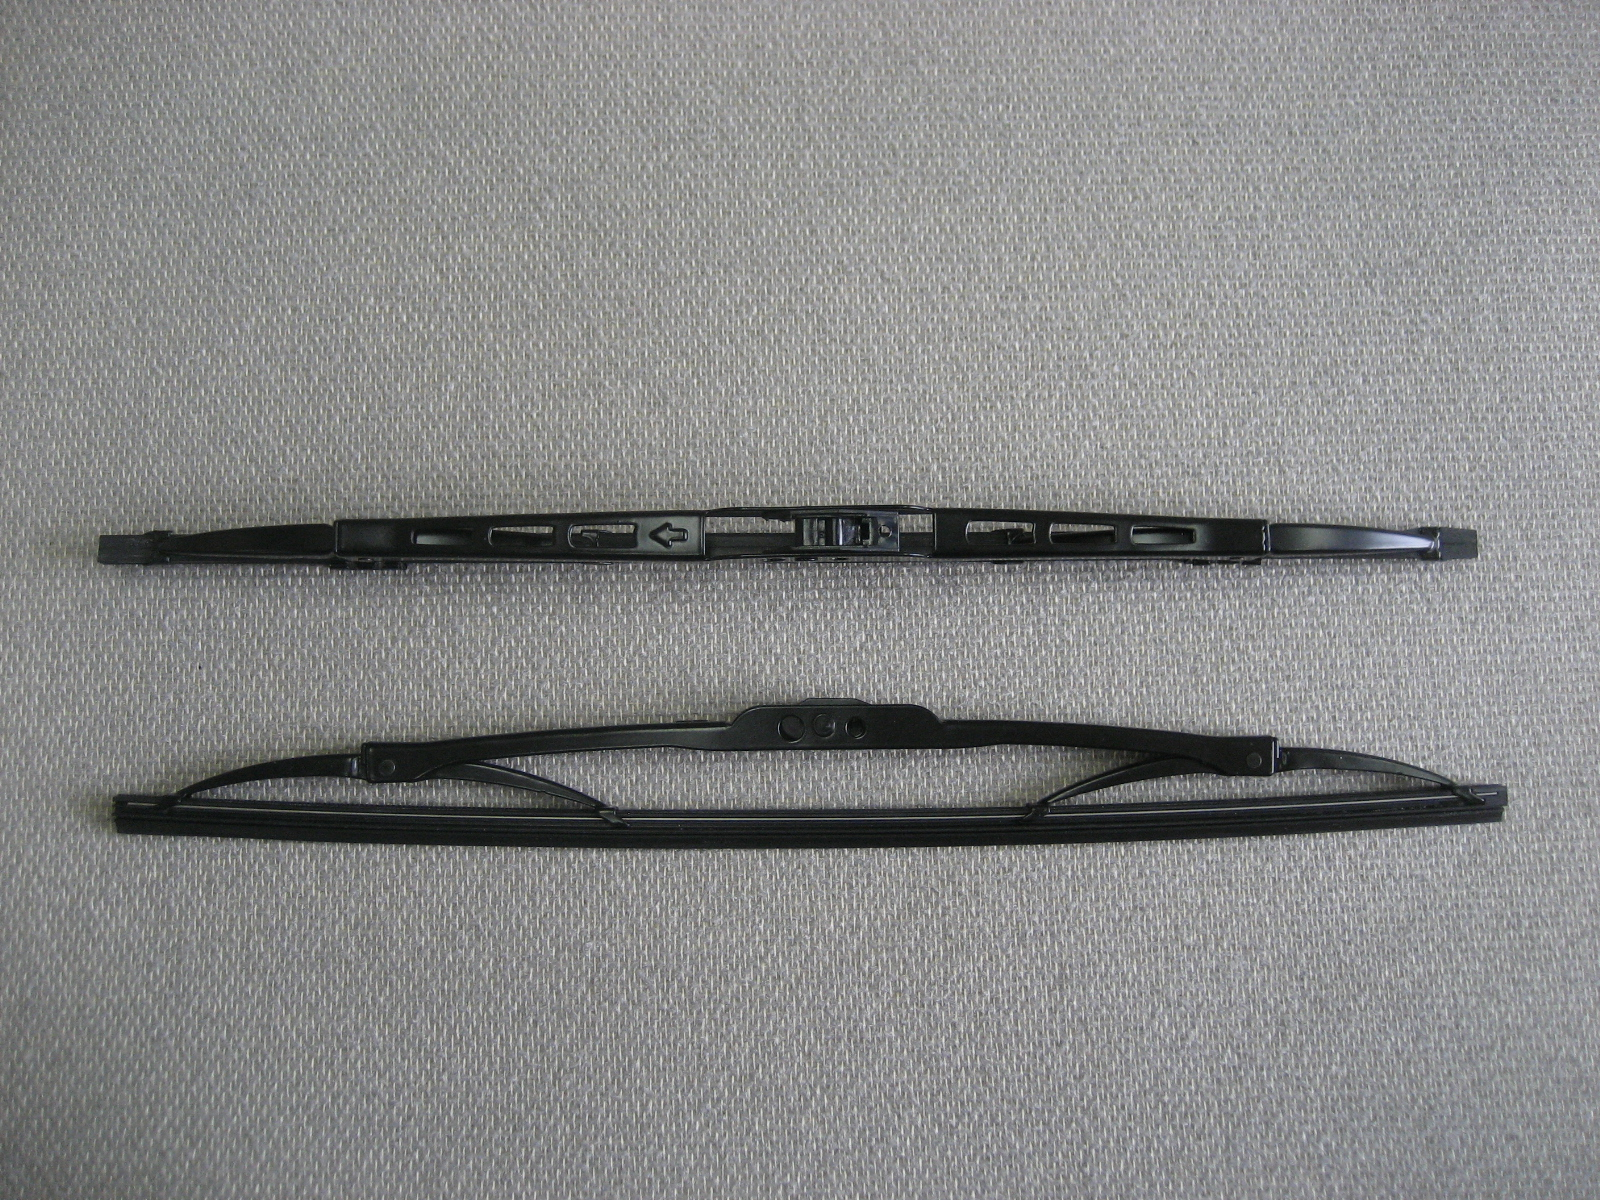 WT1-16 Wiper Technologies WindShield Wiper Blade 16 Inch Length